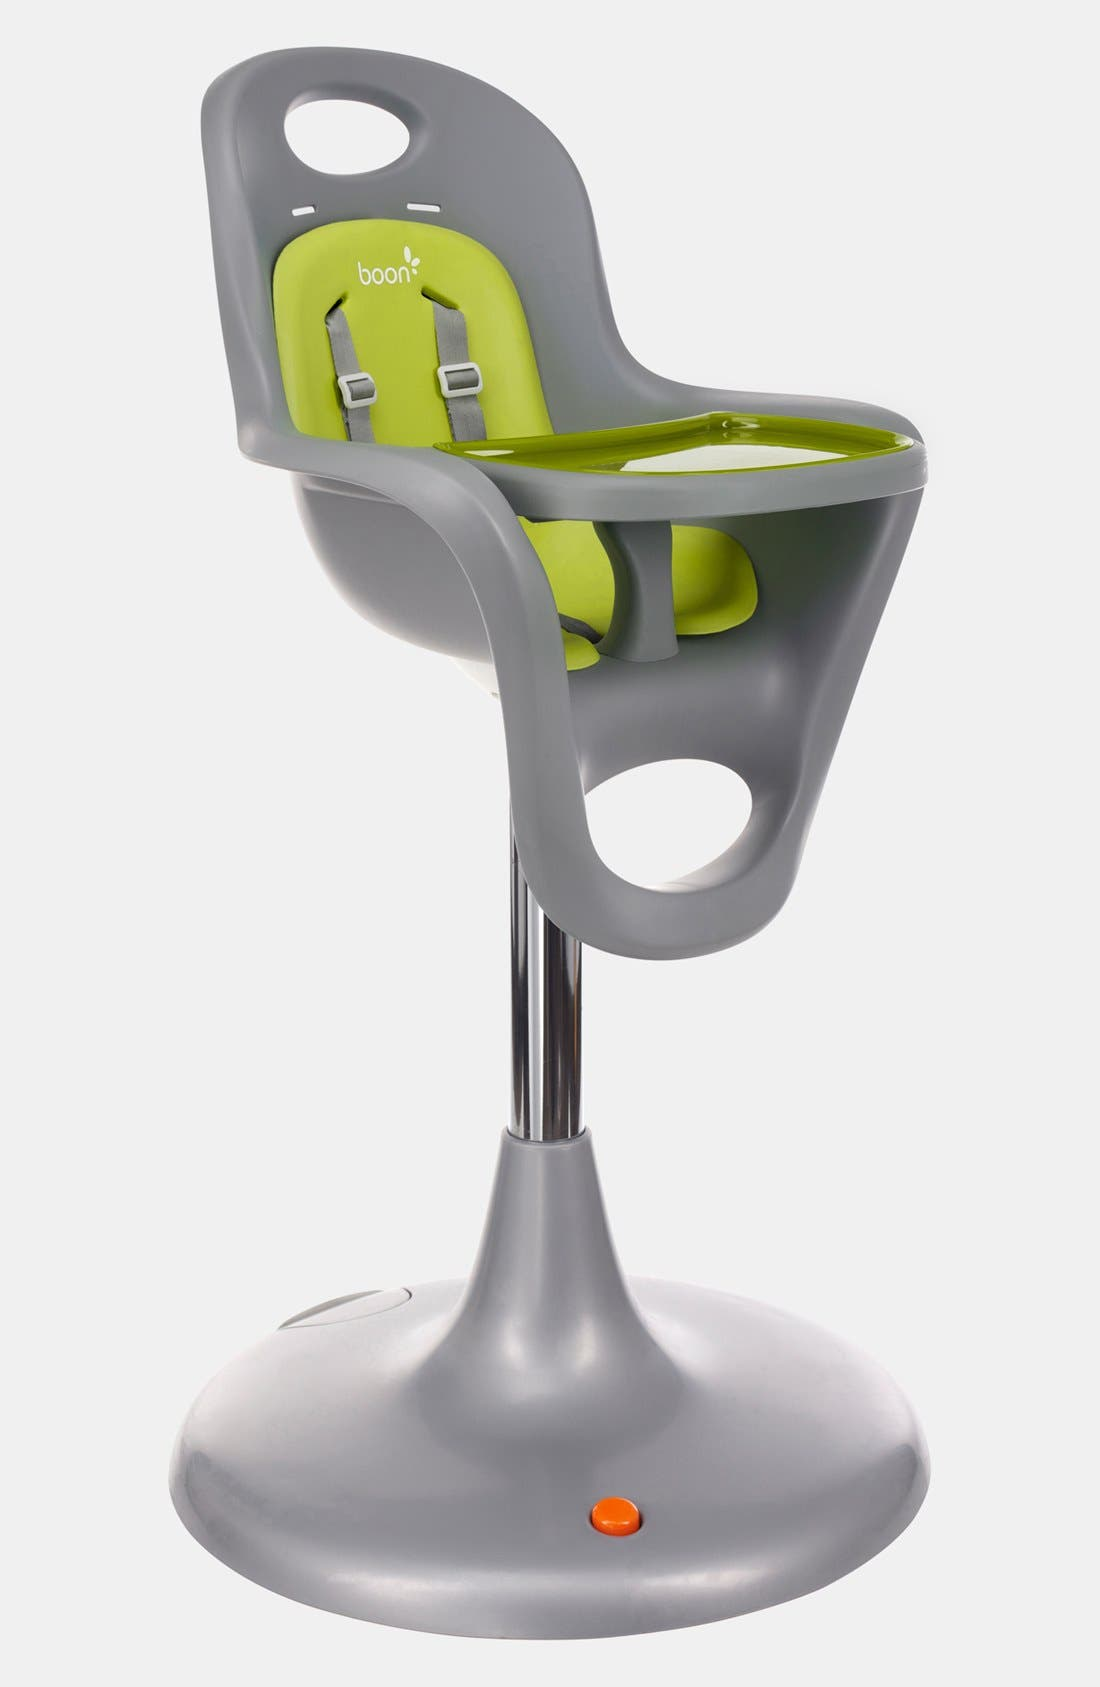 Boon 'Flair' Pedestal High Chair